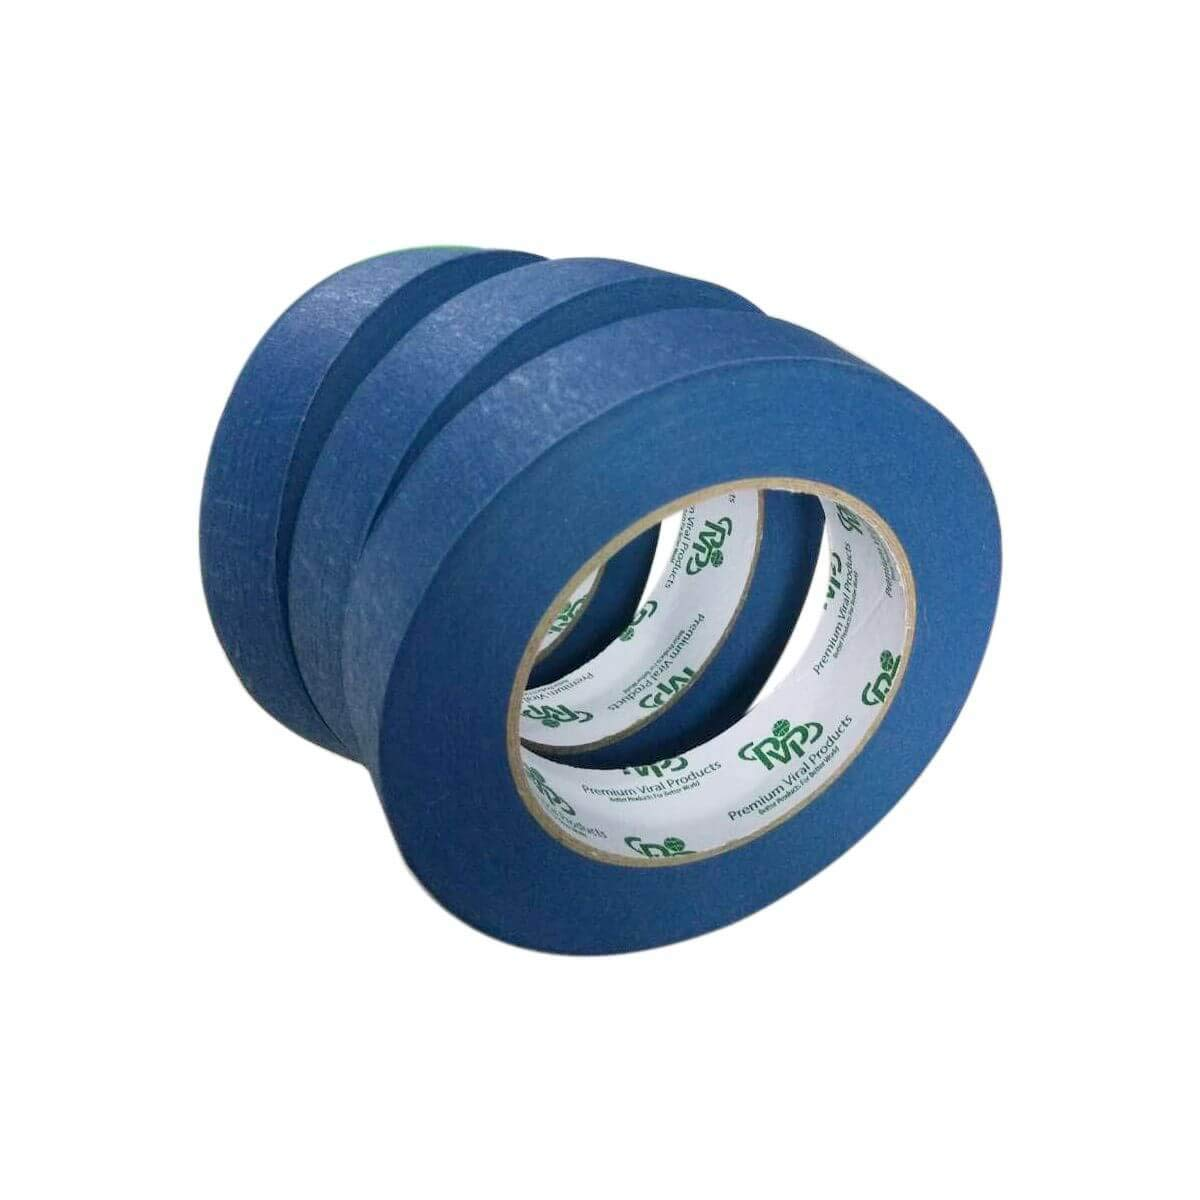 """PVP Professional Grade 1/""""x60 Yard Pack of 3 Multi USE Blue Painters Tape//Masking Tape-Premium Quality Tape Total 180 Yard 14 Day Clean /& Easy Release UV Resistance Environmentally Friendly Multi USE Premium Viral Products"""